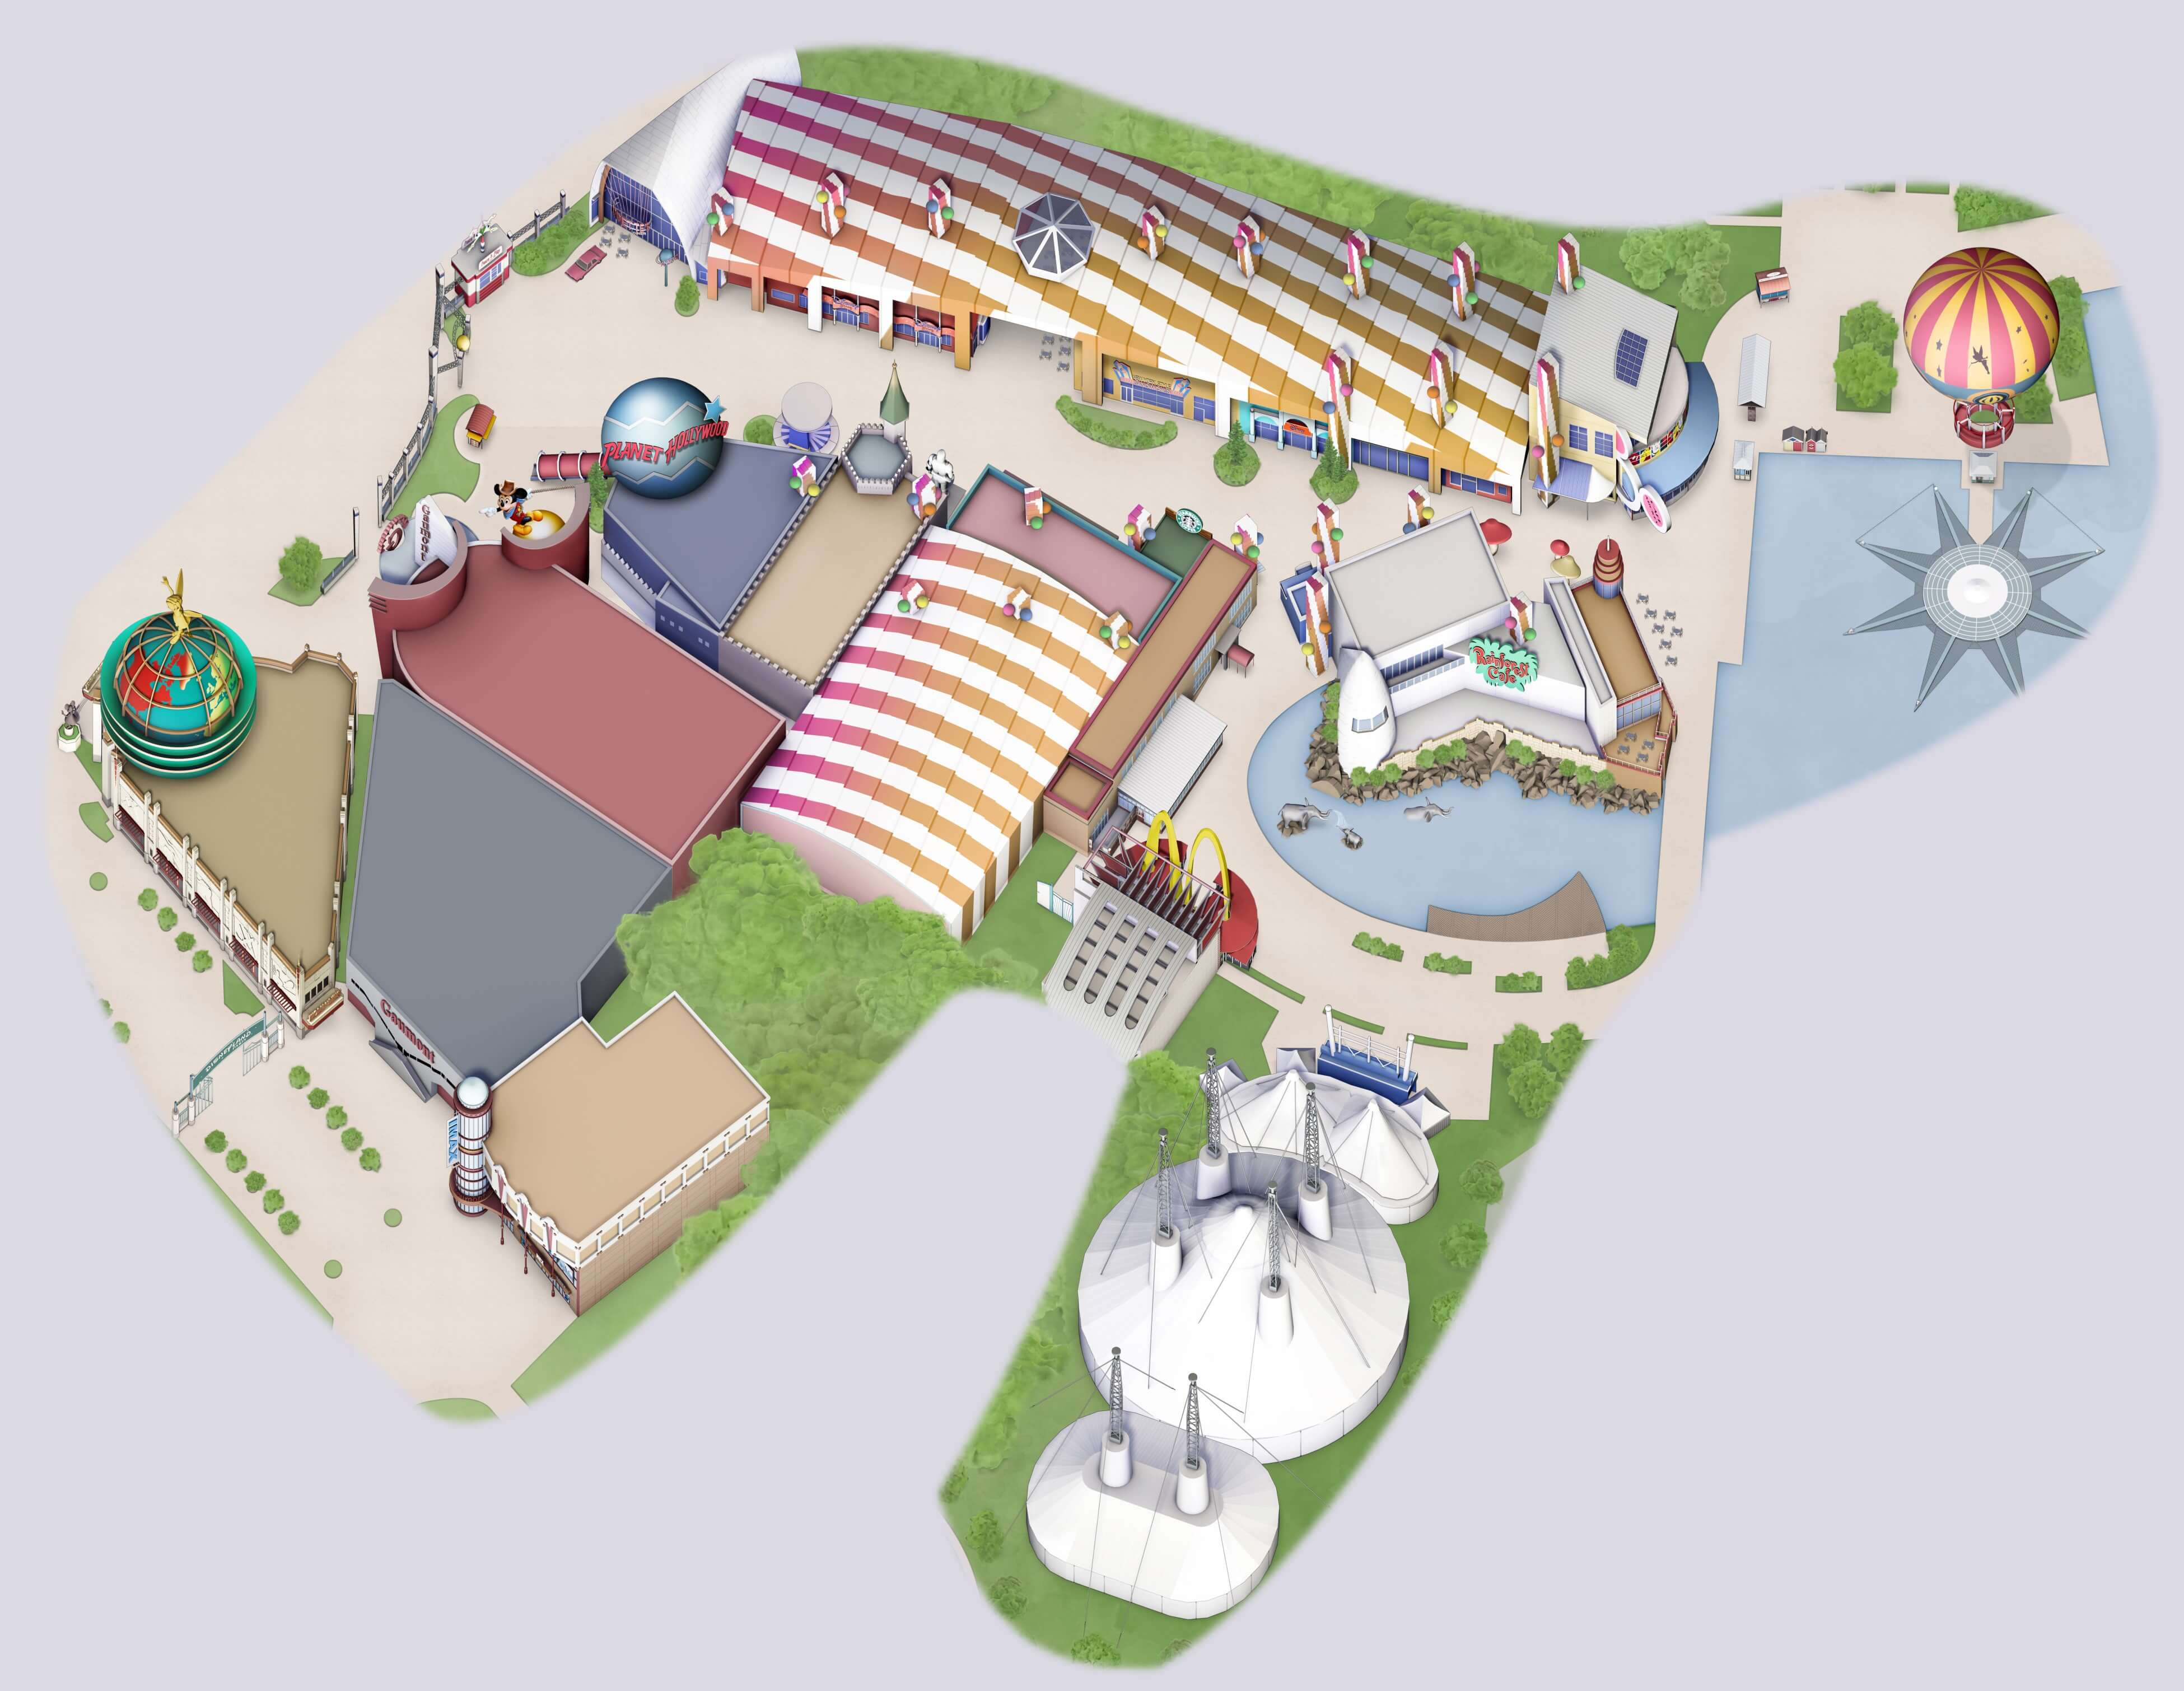 Karte des Disney Village in Disneyland Paris in high resolution